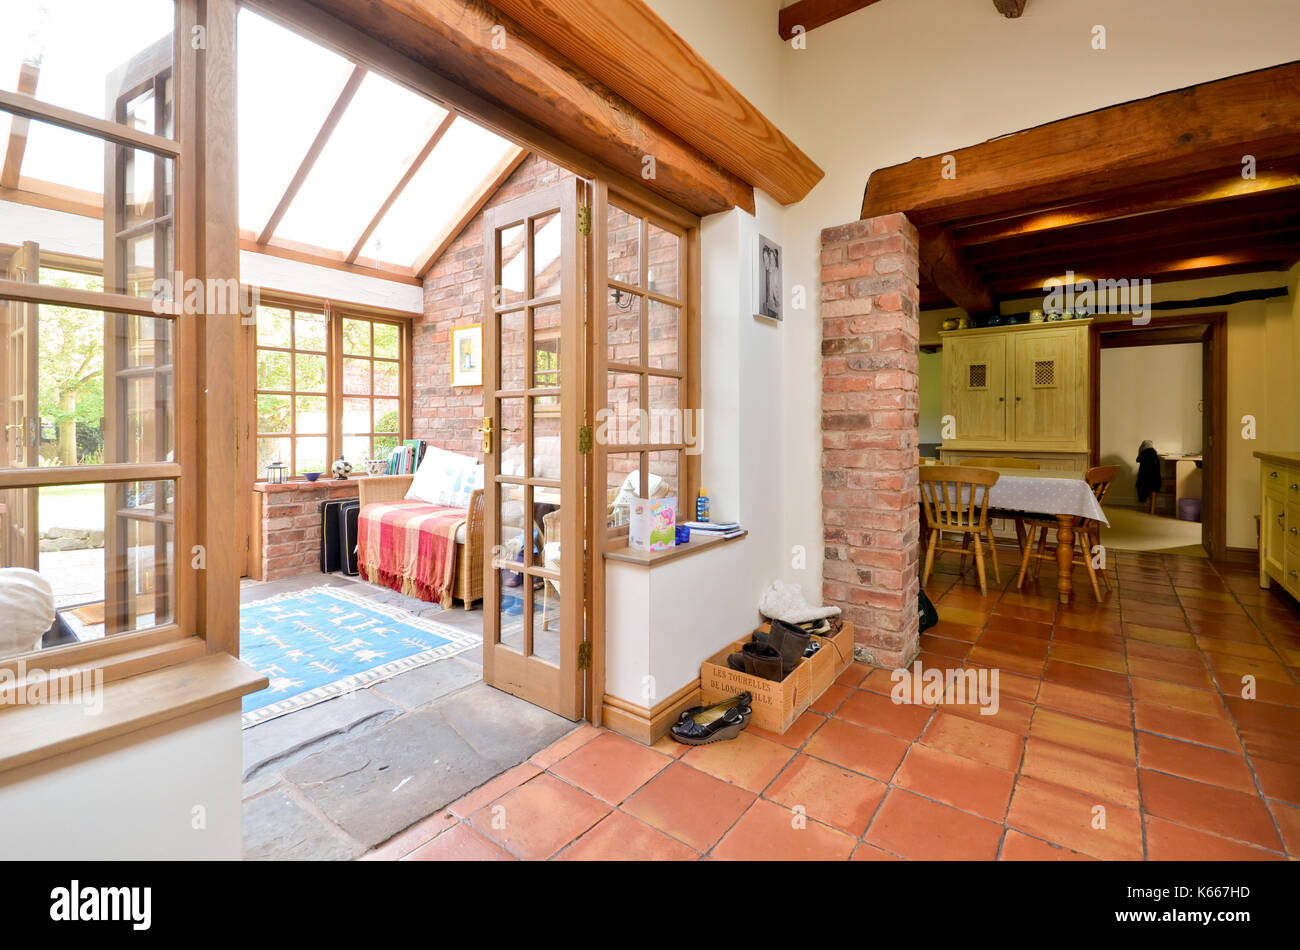 conservatory and kitchen in country cottage - Stock Image